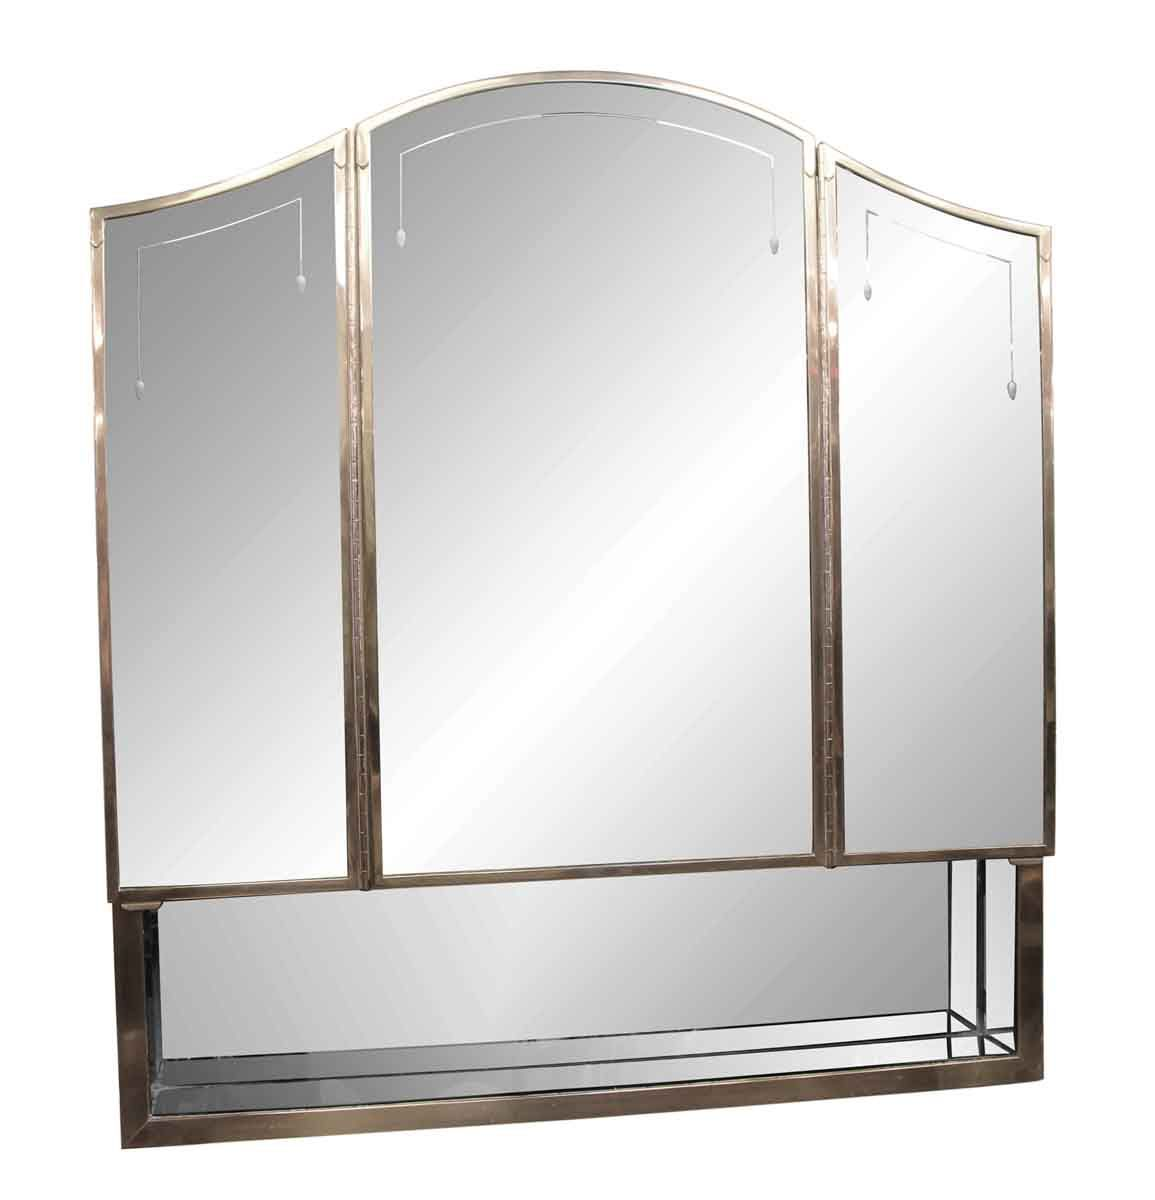 Salvaged waldorf art deco triple mirror medicine cabinet bathroom